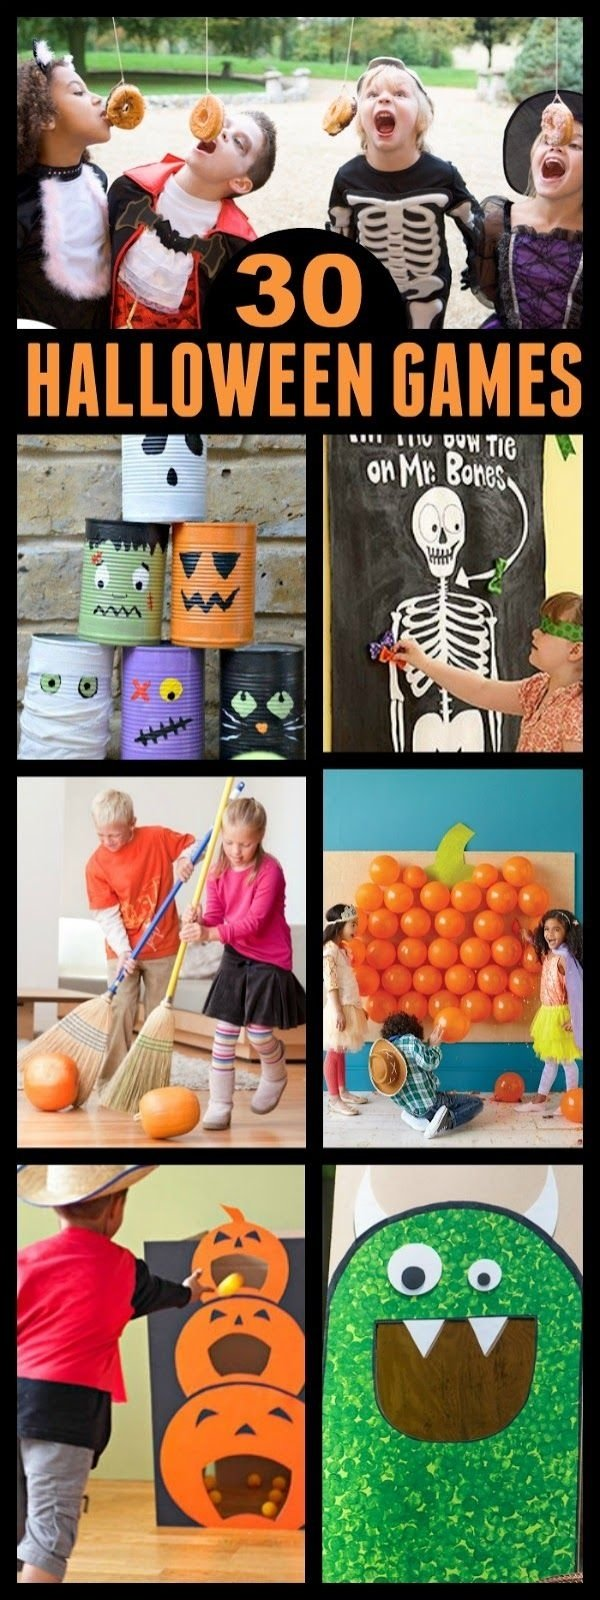 10 Wonderful Halloween Party Ideas Kids Games halloween games for kids halloween games game ideas and 30th 2021